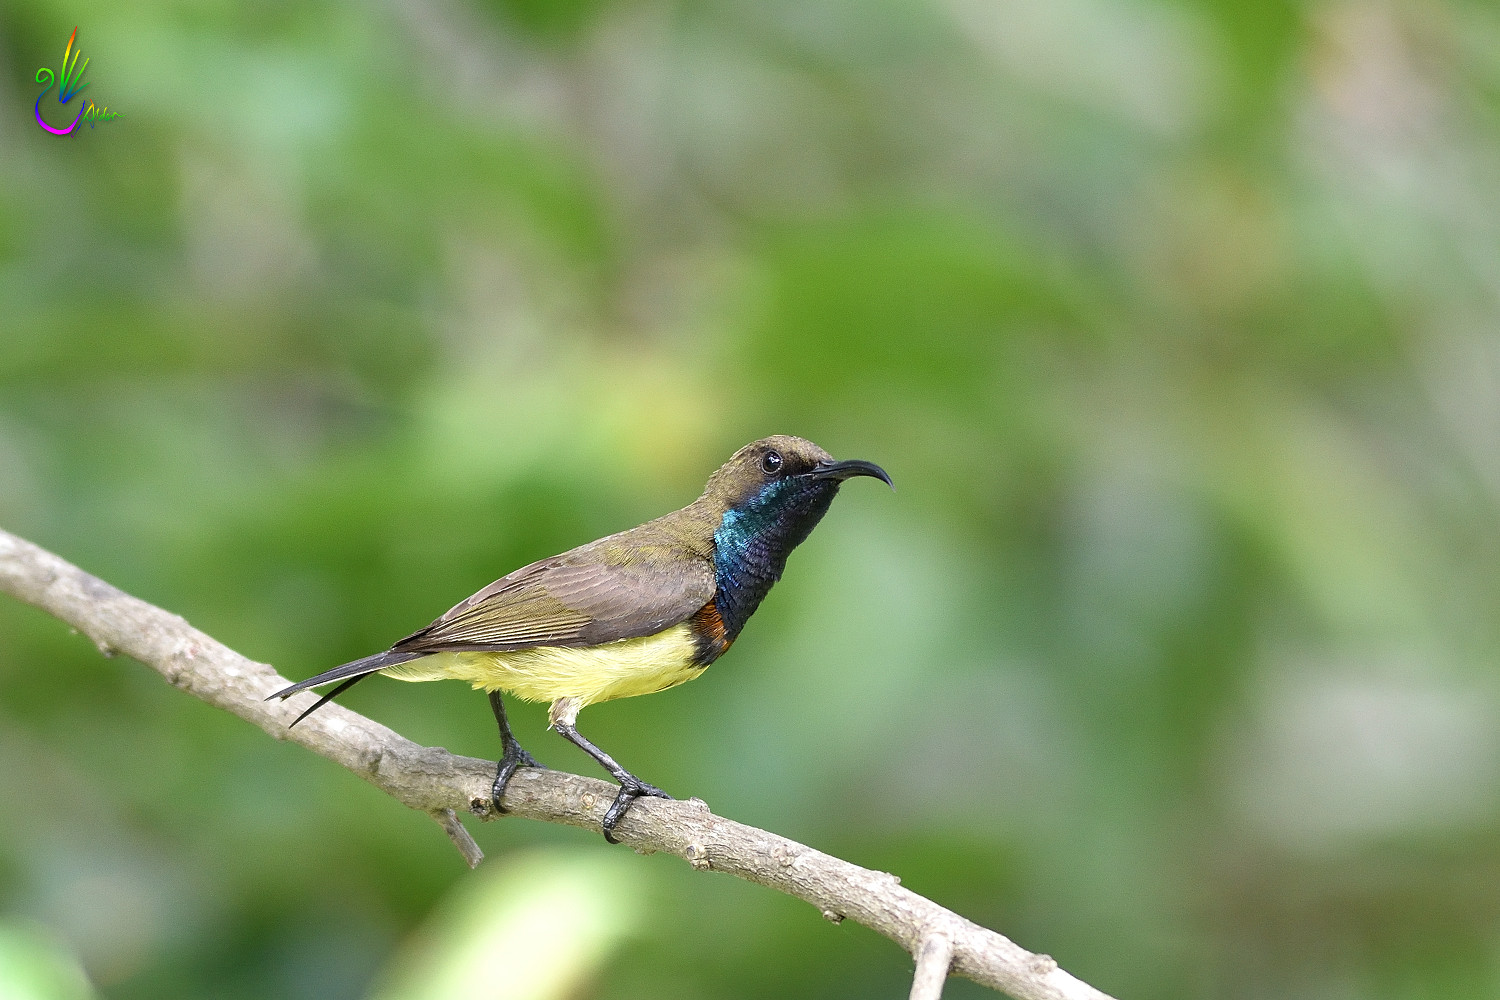 Olive-backed_Sunbird_2153